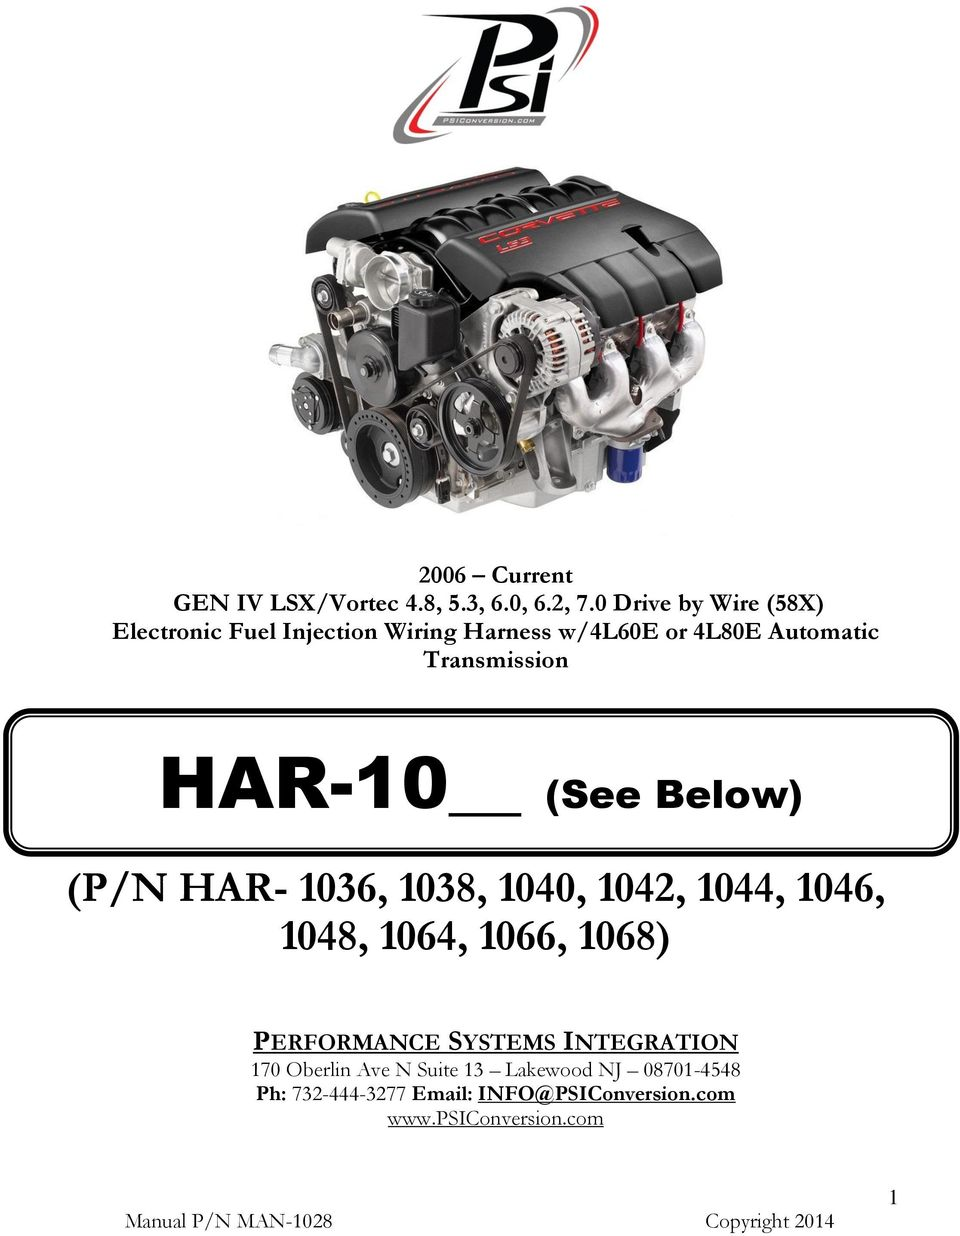 Performance Systems Integration Pdf 4l80e Wiring Harness Transmission Har 10 See Below P N 1036